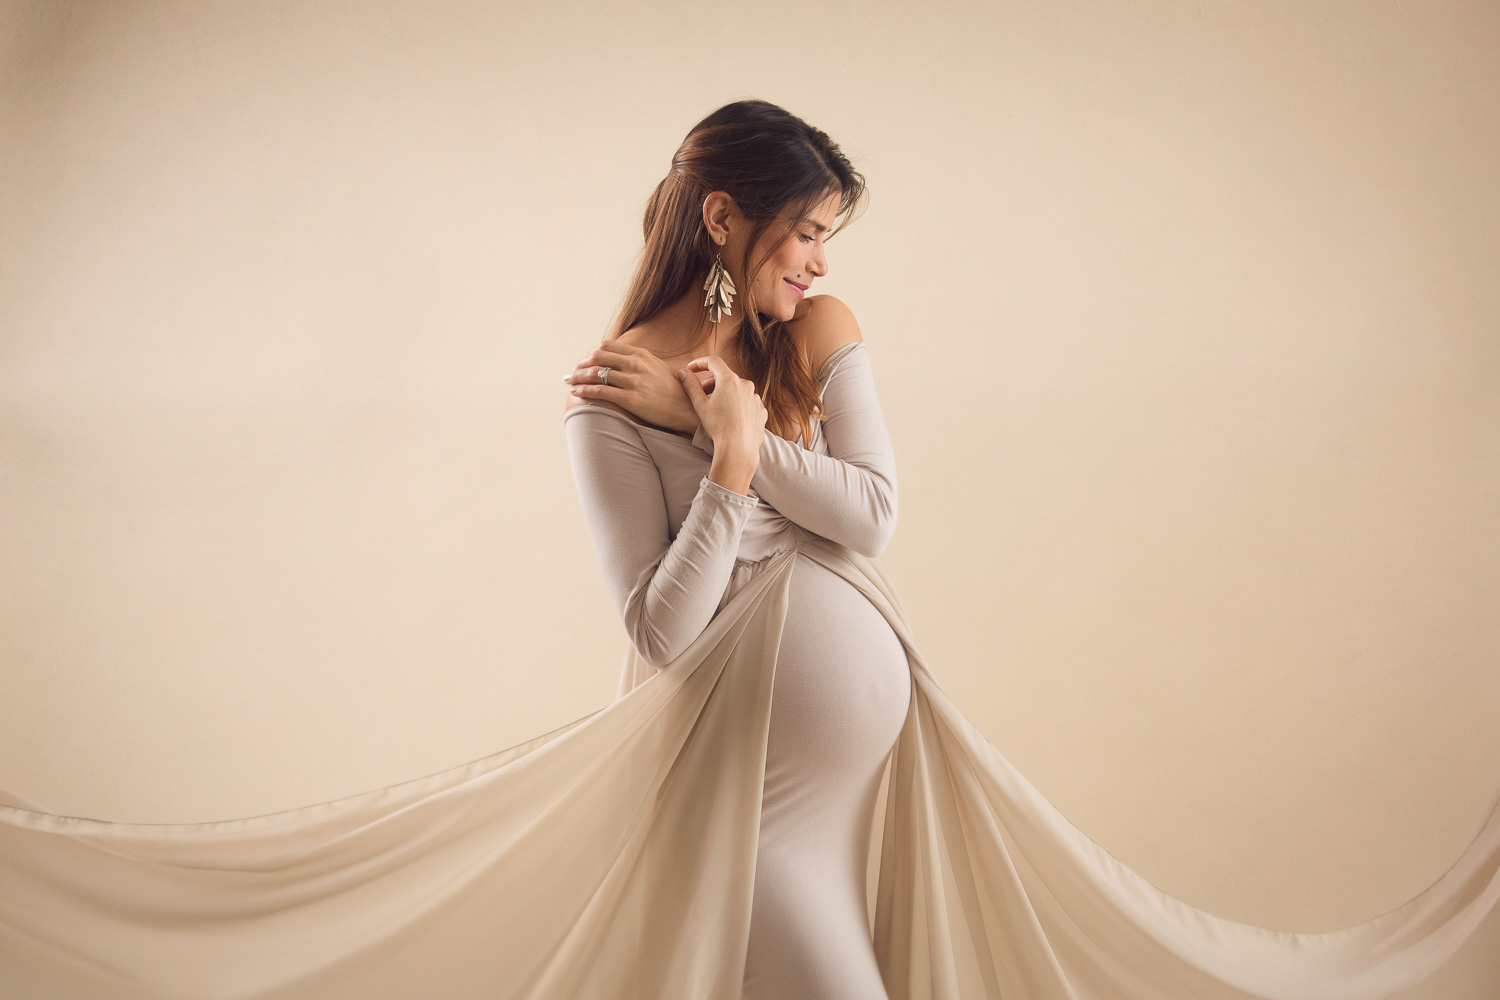 vancouver-maternity-gown-18